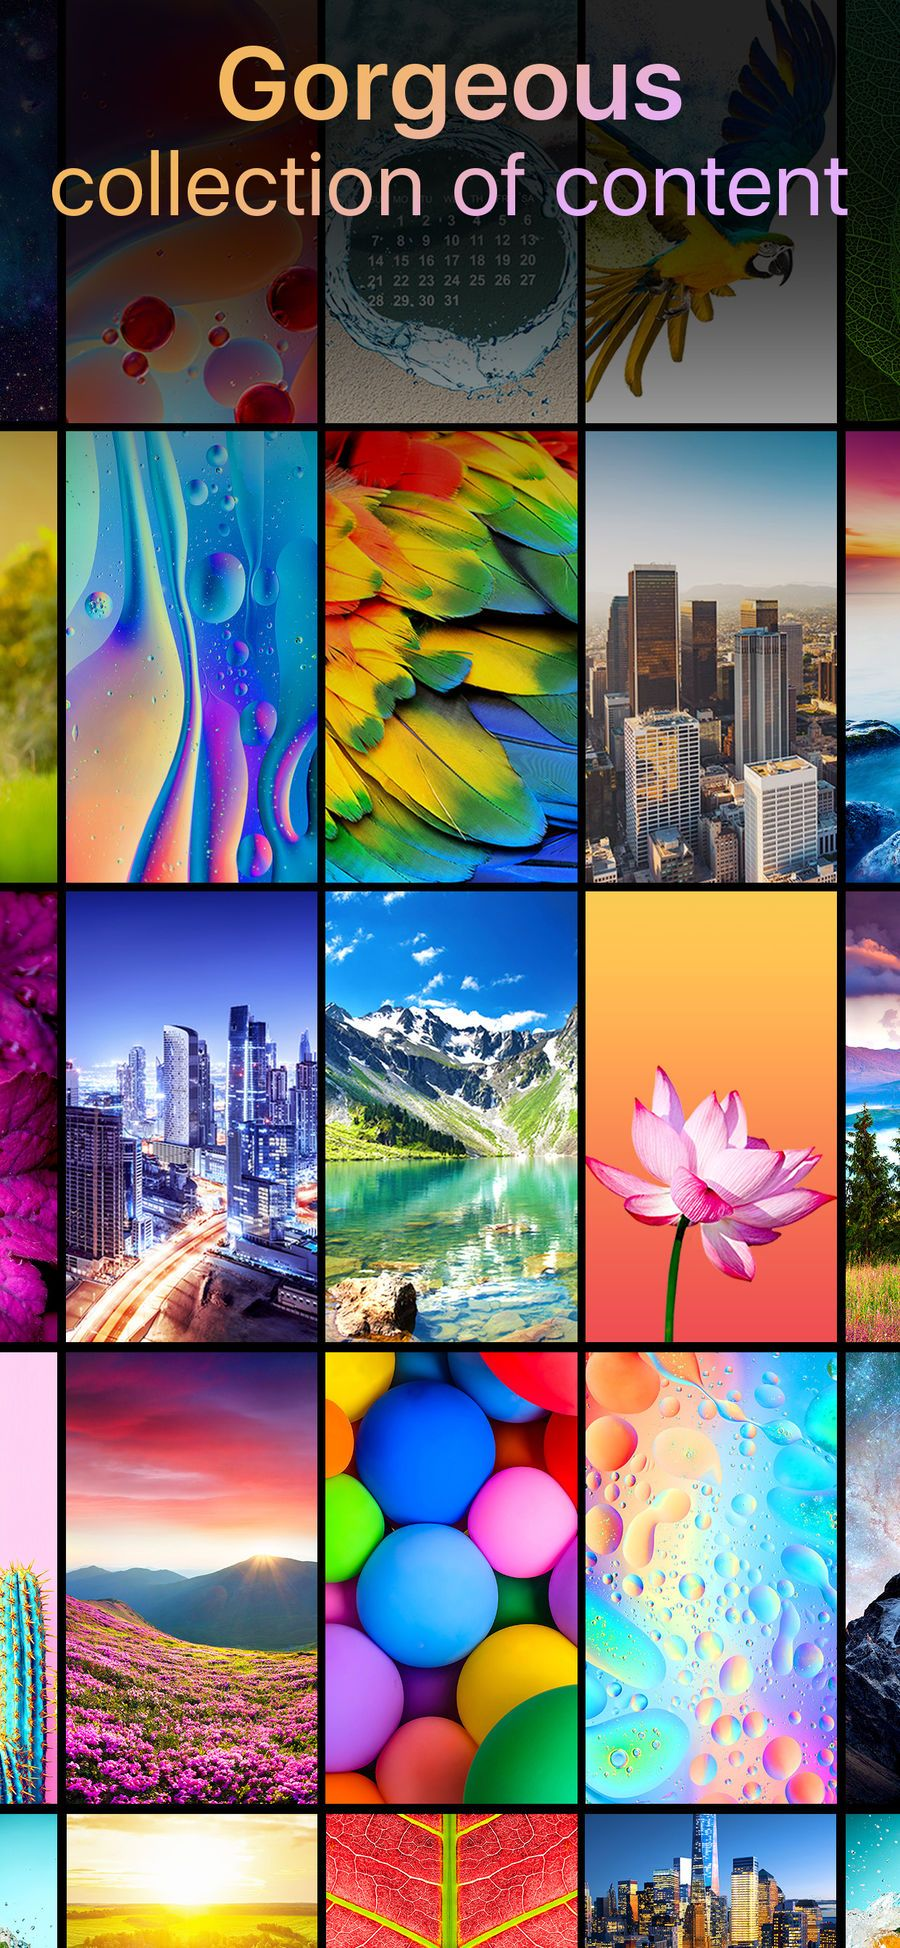 Live Wallpapers Now On The App Store Live Wallpapers Live Wallpaper Iphone Free Live Wallpapers